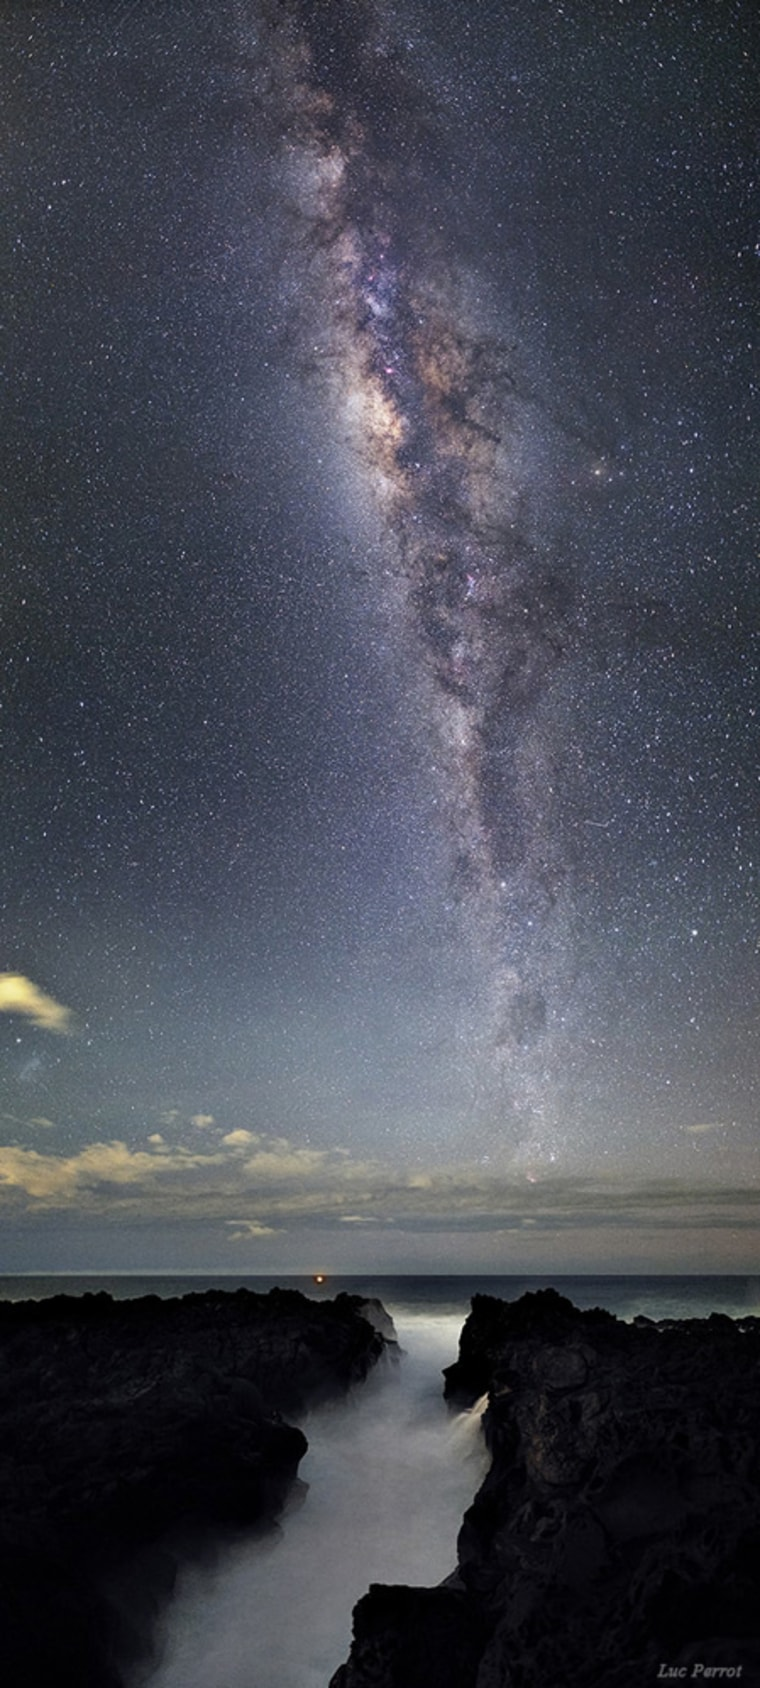 """Crossed Destinies,"" the Milky Way over Reunion Island in the Indian Ocean by Luc Perrot of France (www.lucperrot.fr). This image was the 2nd winner in the the Beauty of the Night Sky category."